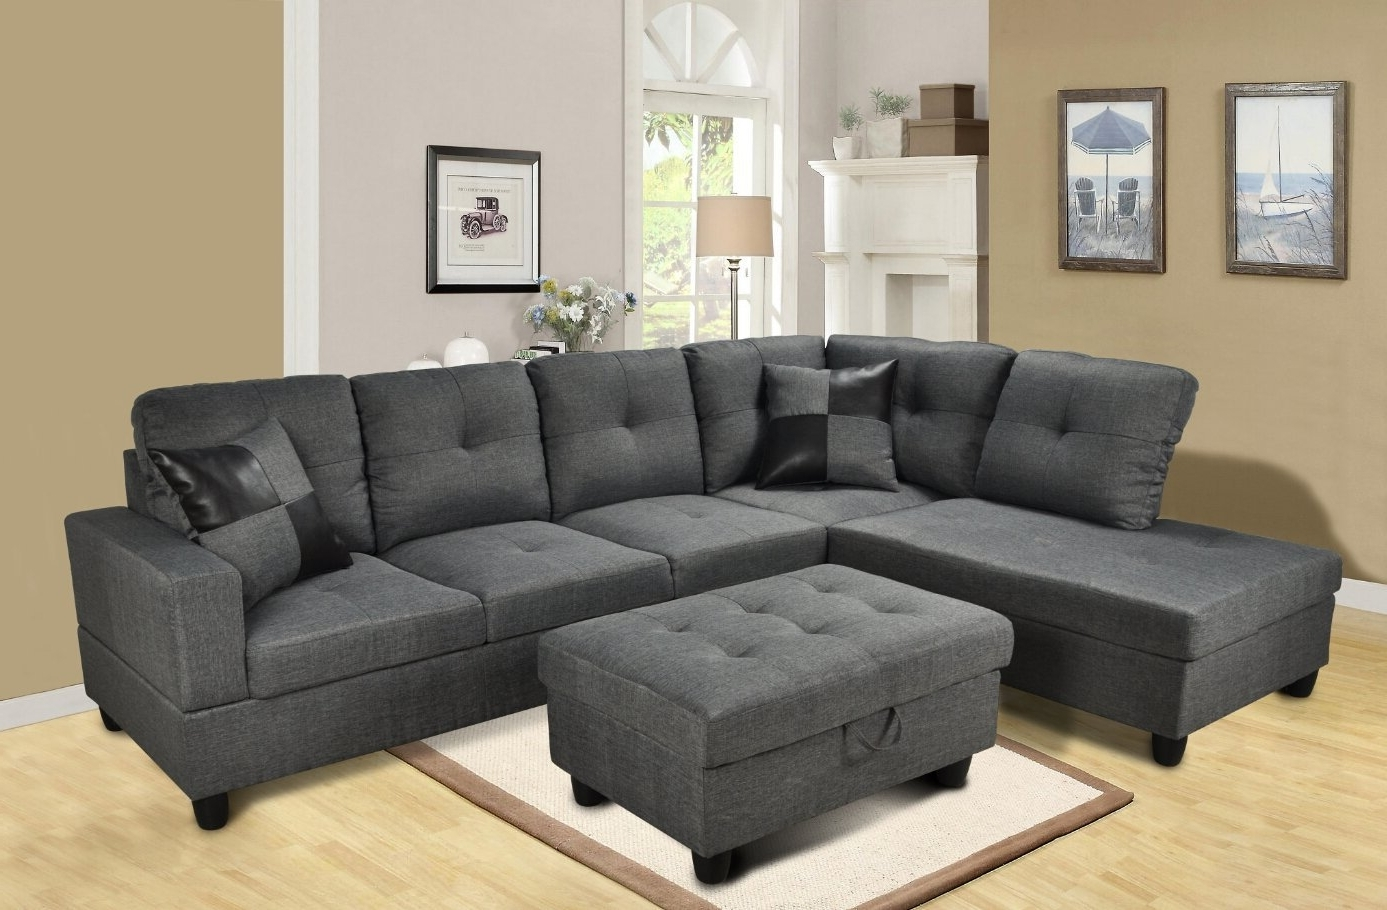 Sectional Sofas Under 600 Intended For Most Recent Amazon: Beverly Furniture 3 Piece Microfiber And Faux Leather (View 11 of 15)